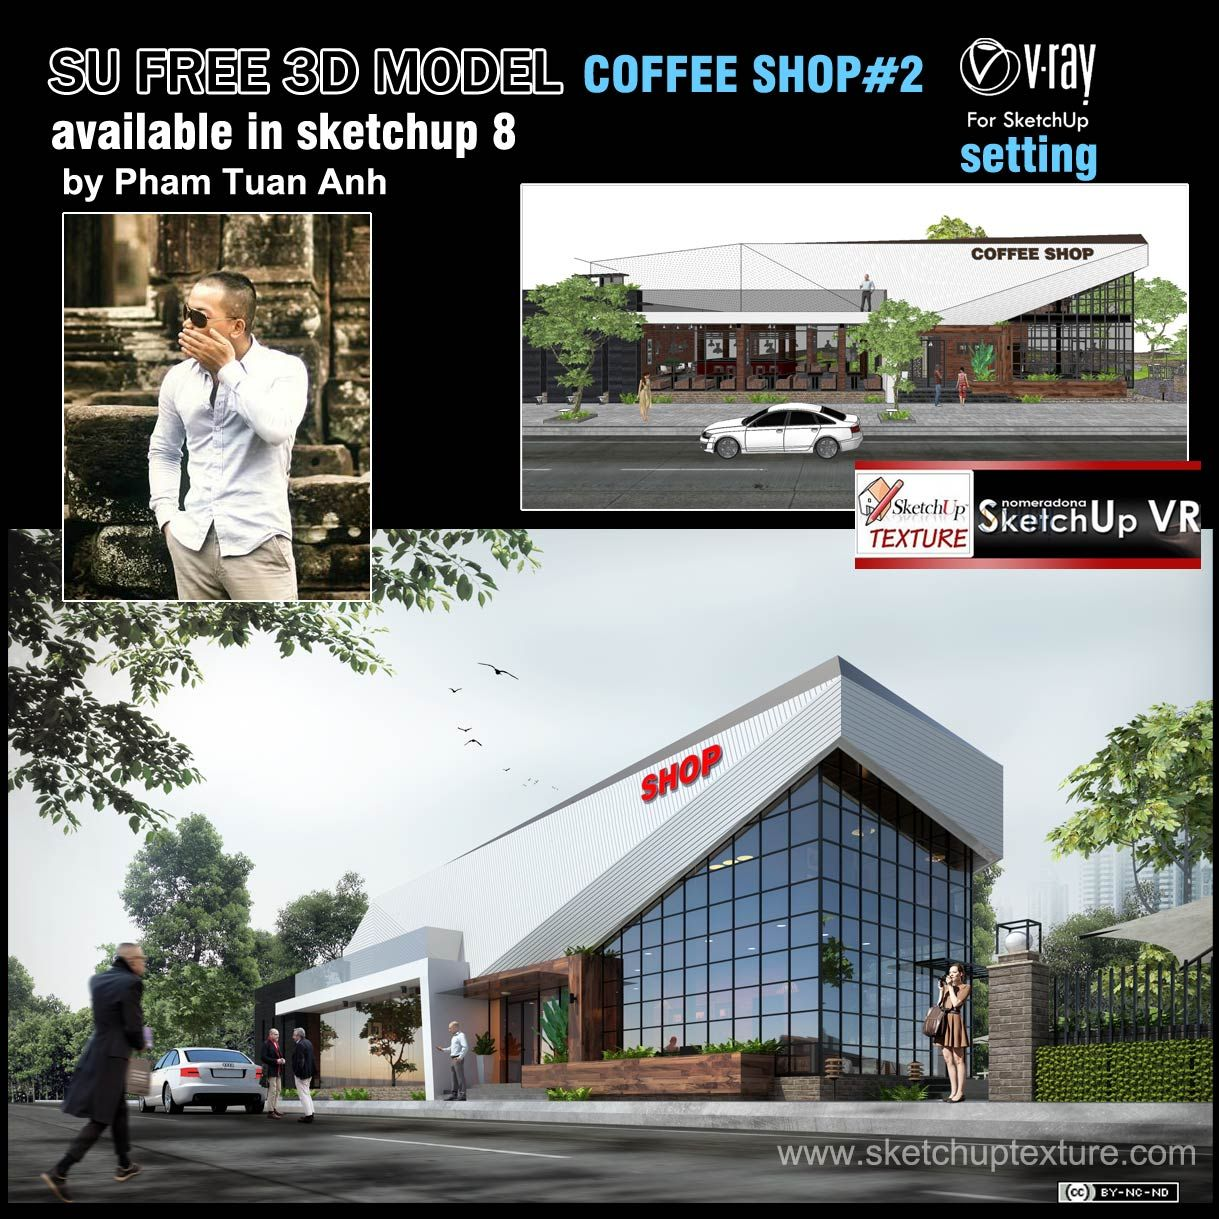 FREE SKETCHUP 3D MODEL COFFEE SHOP shared by Pham Tuan Anh https://www.facebook.com/ktsphamtuananh from Vietnam, vray setting, fully 3d furnished, Read more http://www.sketchuptexture.com/2014/05/free-sketchup-model-coffe-shop-2-vray-setting.html